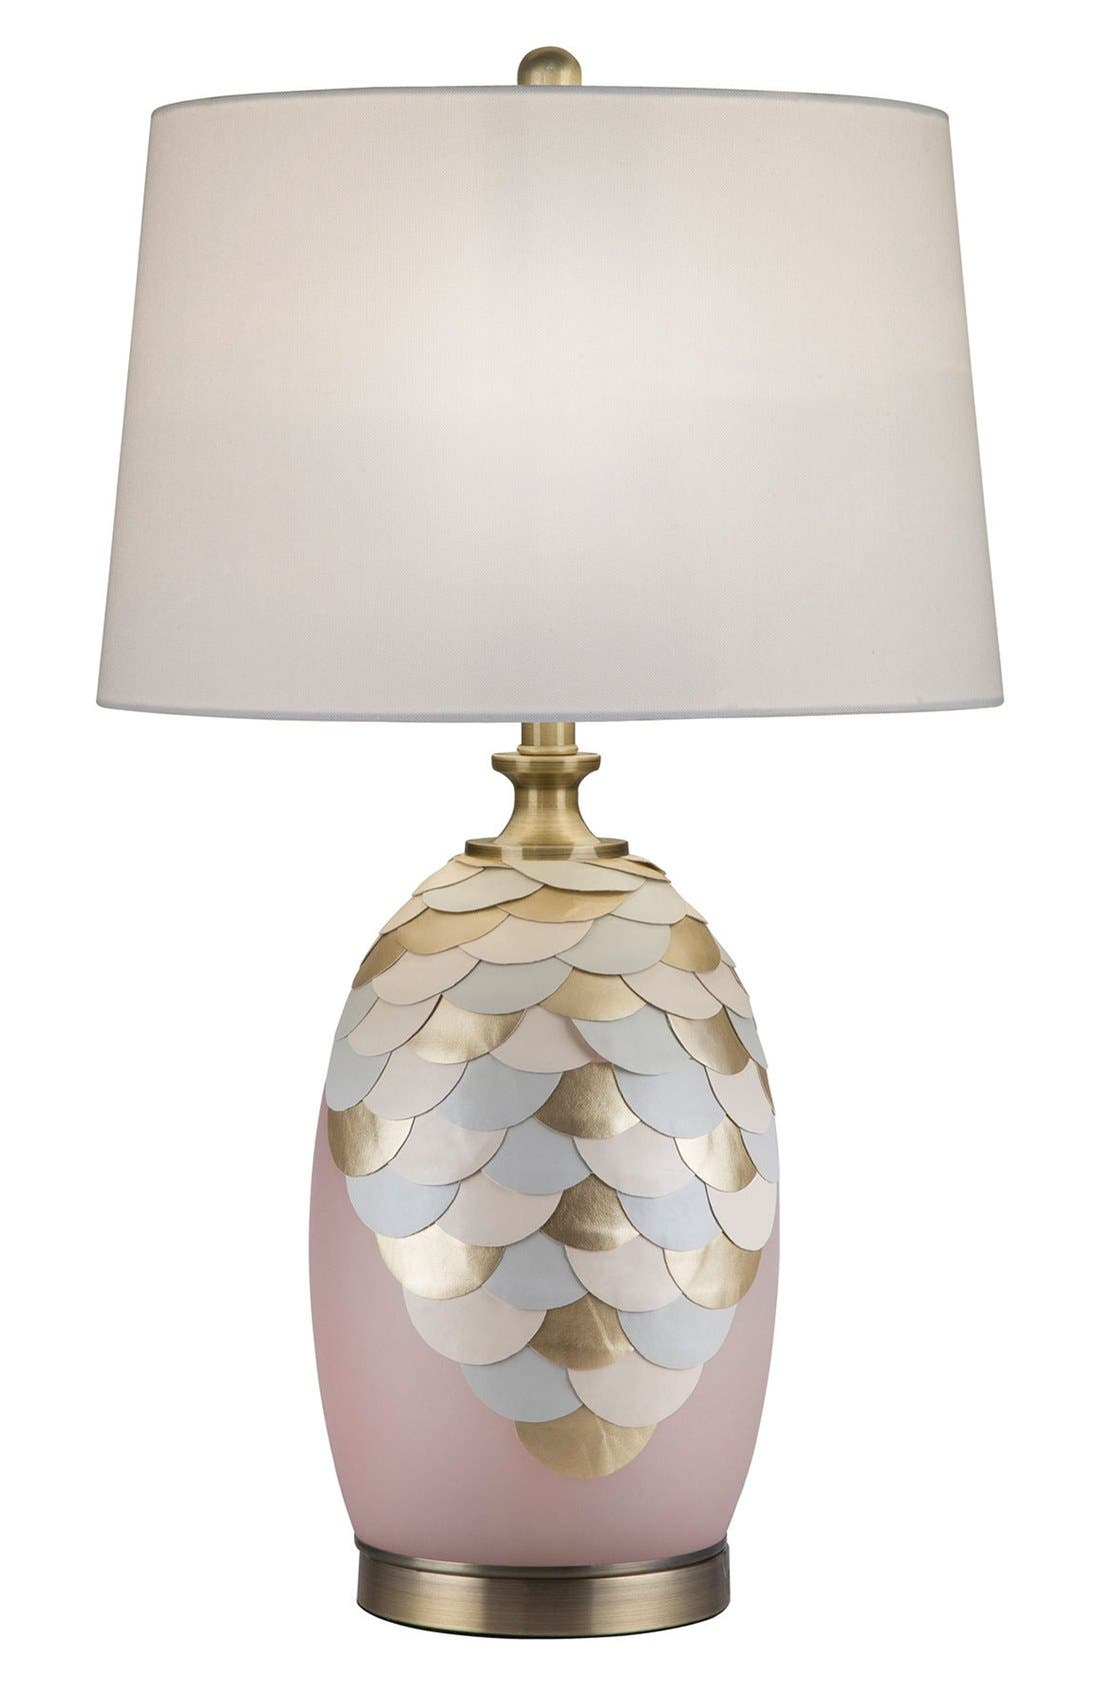 Main Image - JAlexander Rose Quartz Table Lamp with Faux Leather & Brass Accents